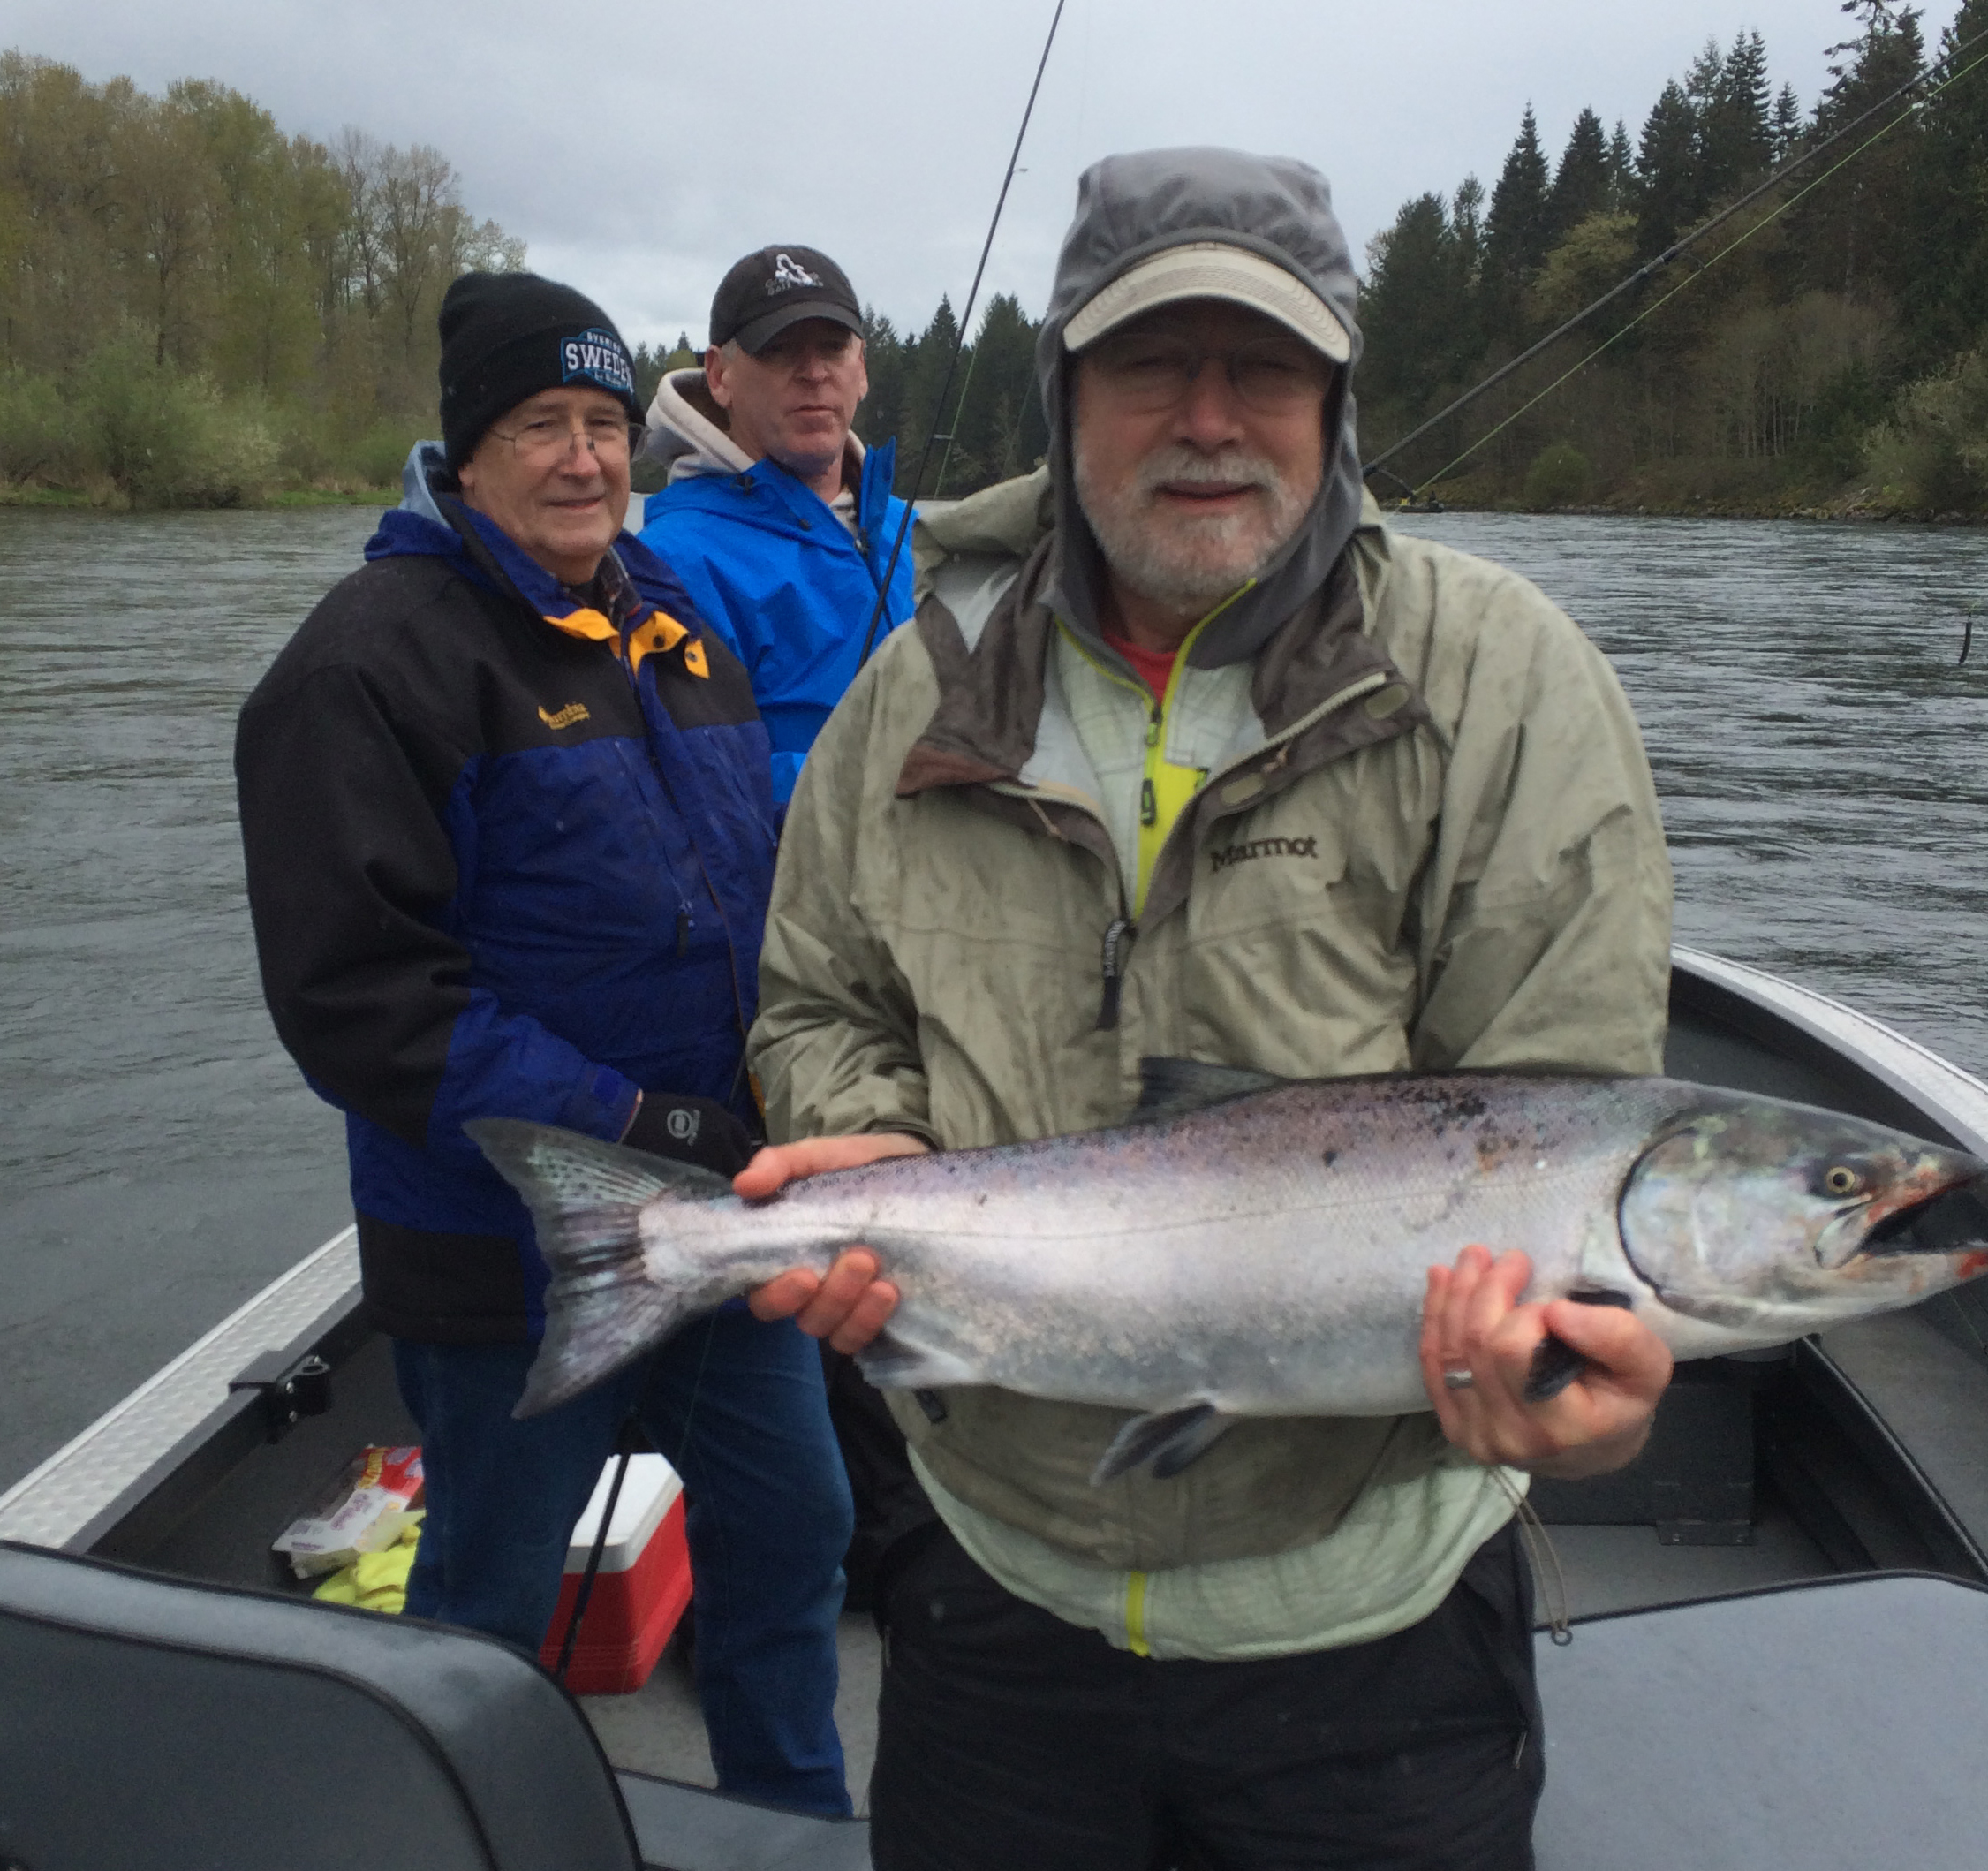 Fish tale guide service washington fishing guide for for Salmon fishing washington rivers